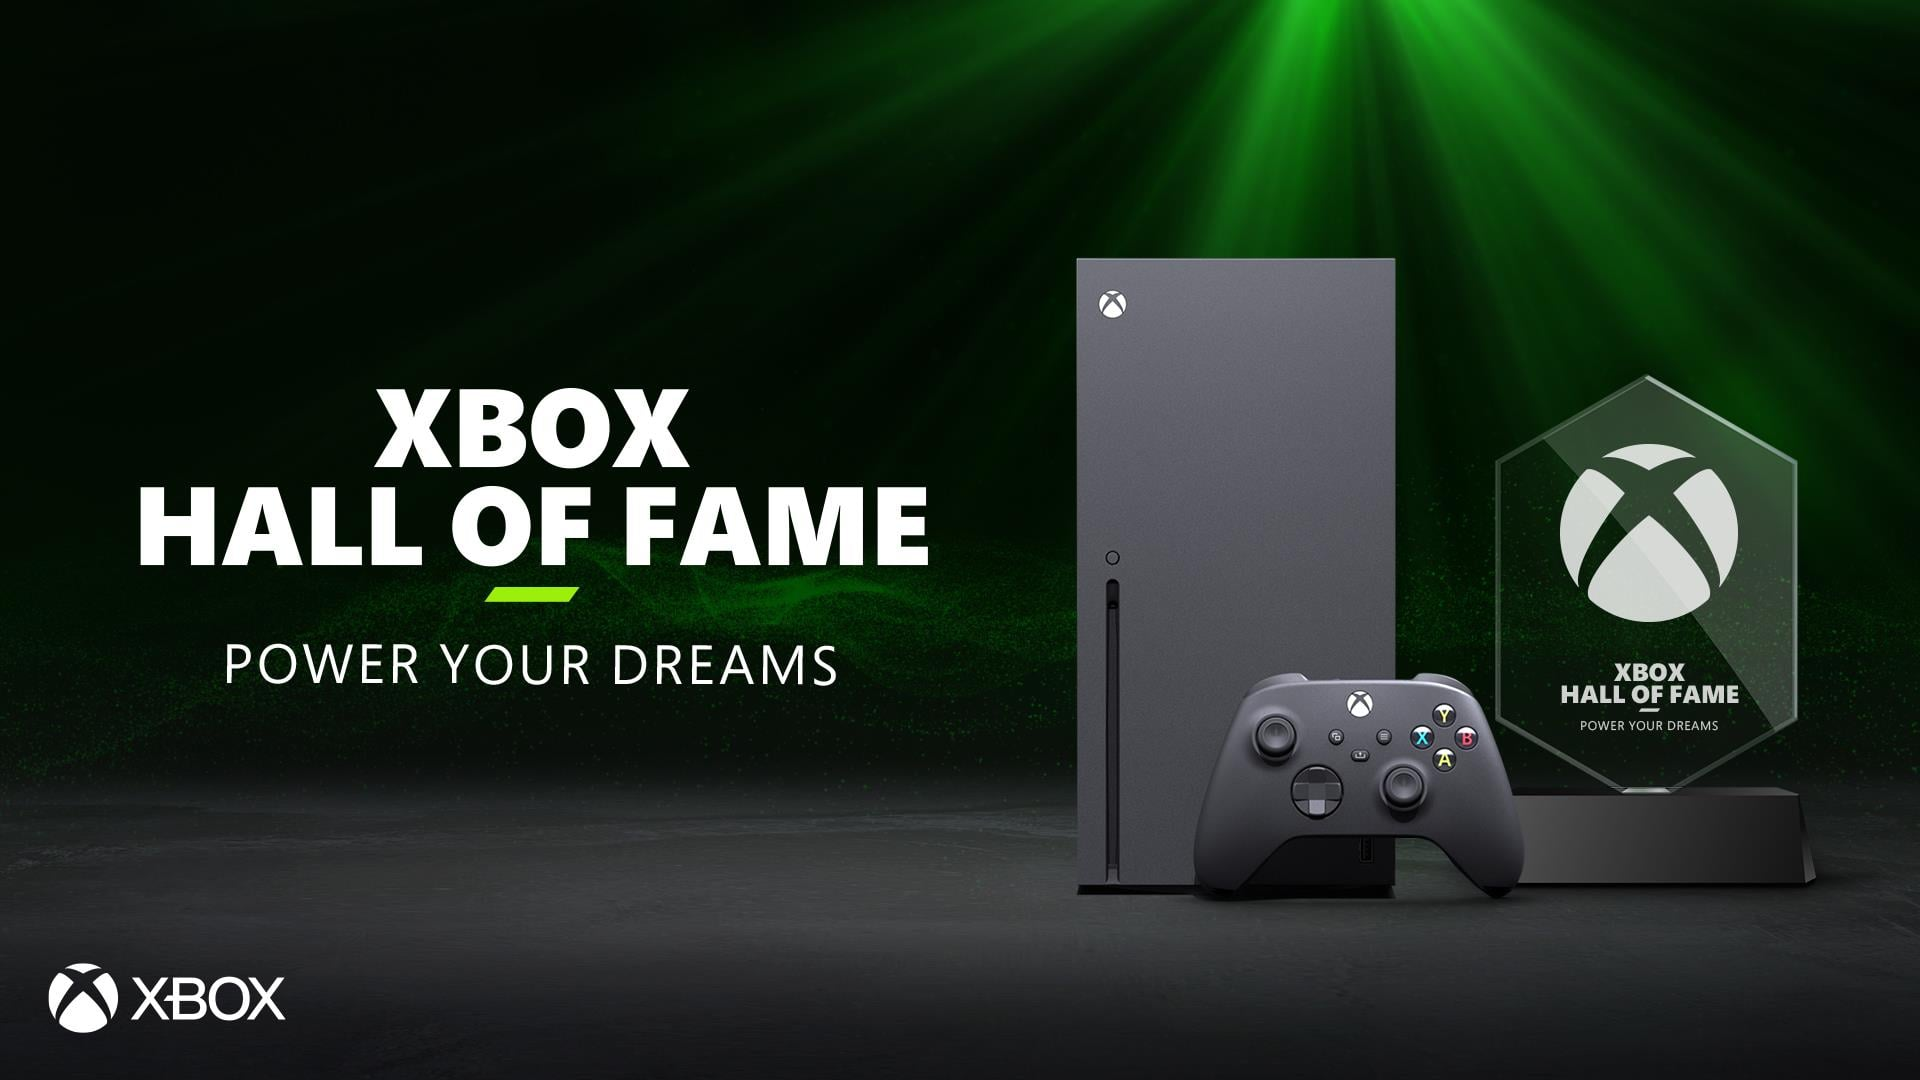 Xbox Hall of Fame leaderboards